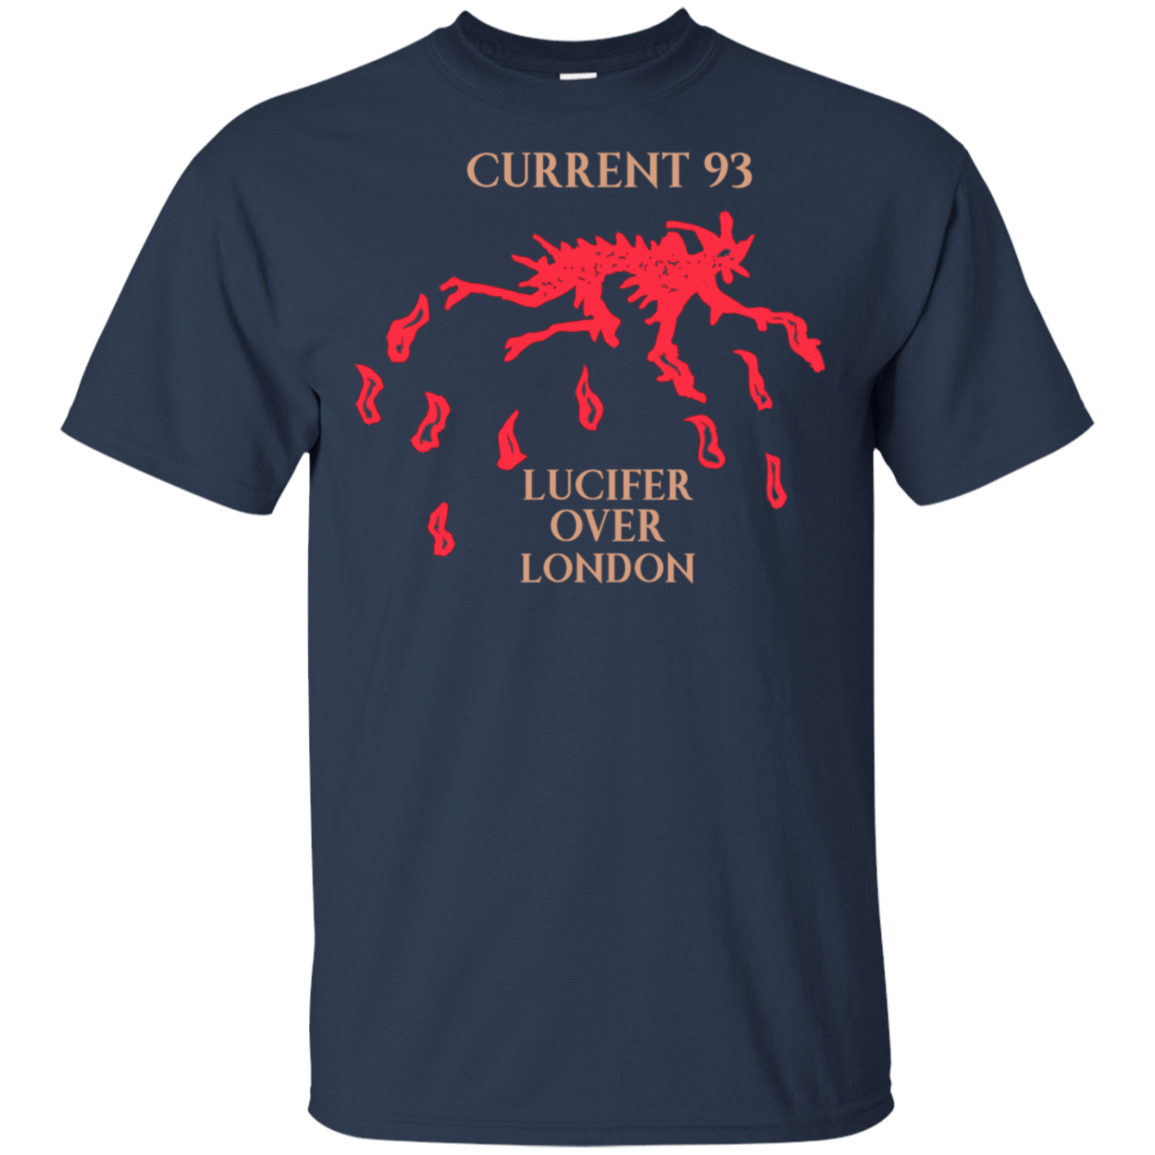 Current 93 Lucifer Over London 22-111-73890759-250 - Tee Ript